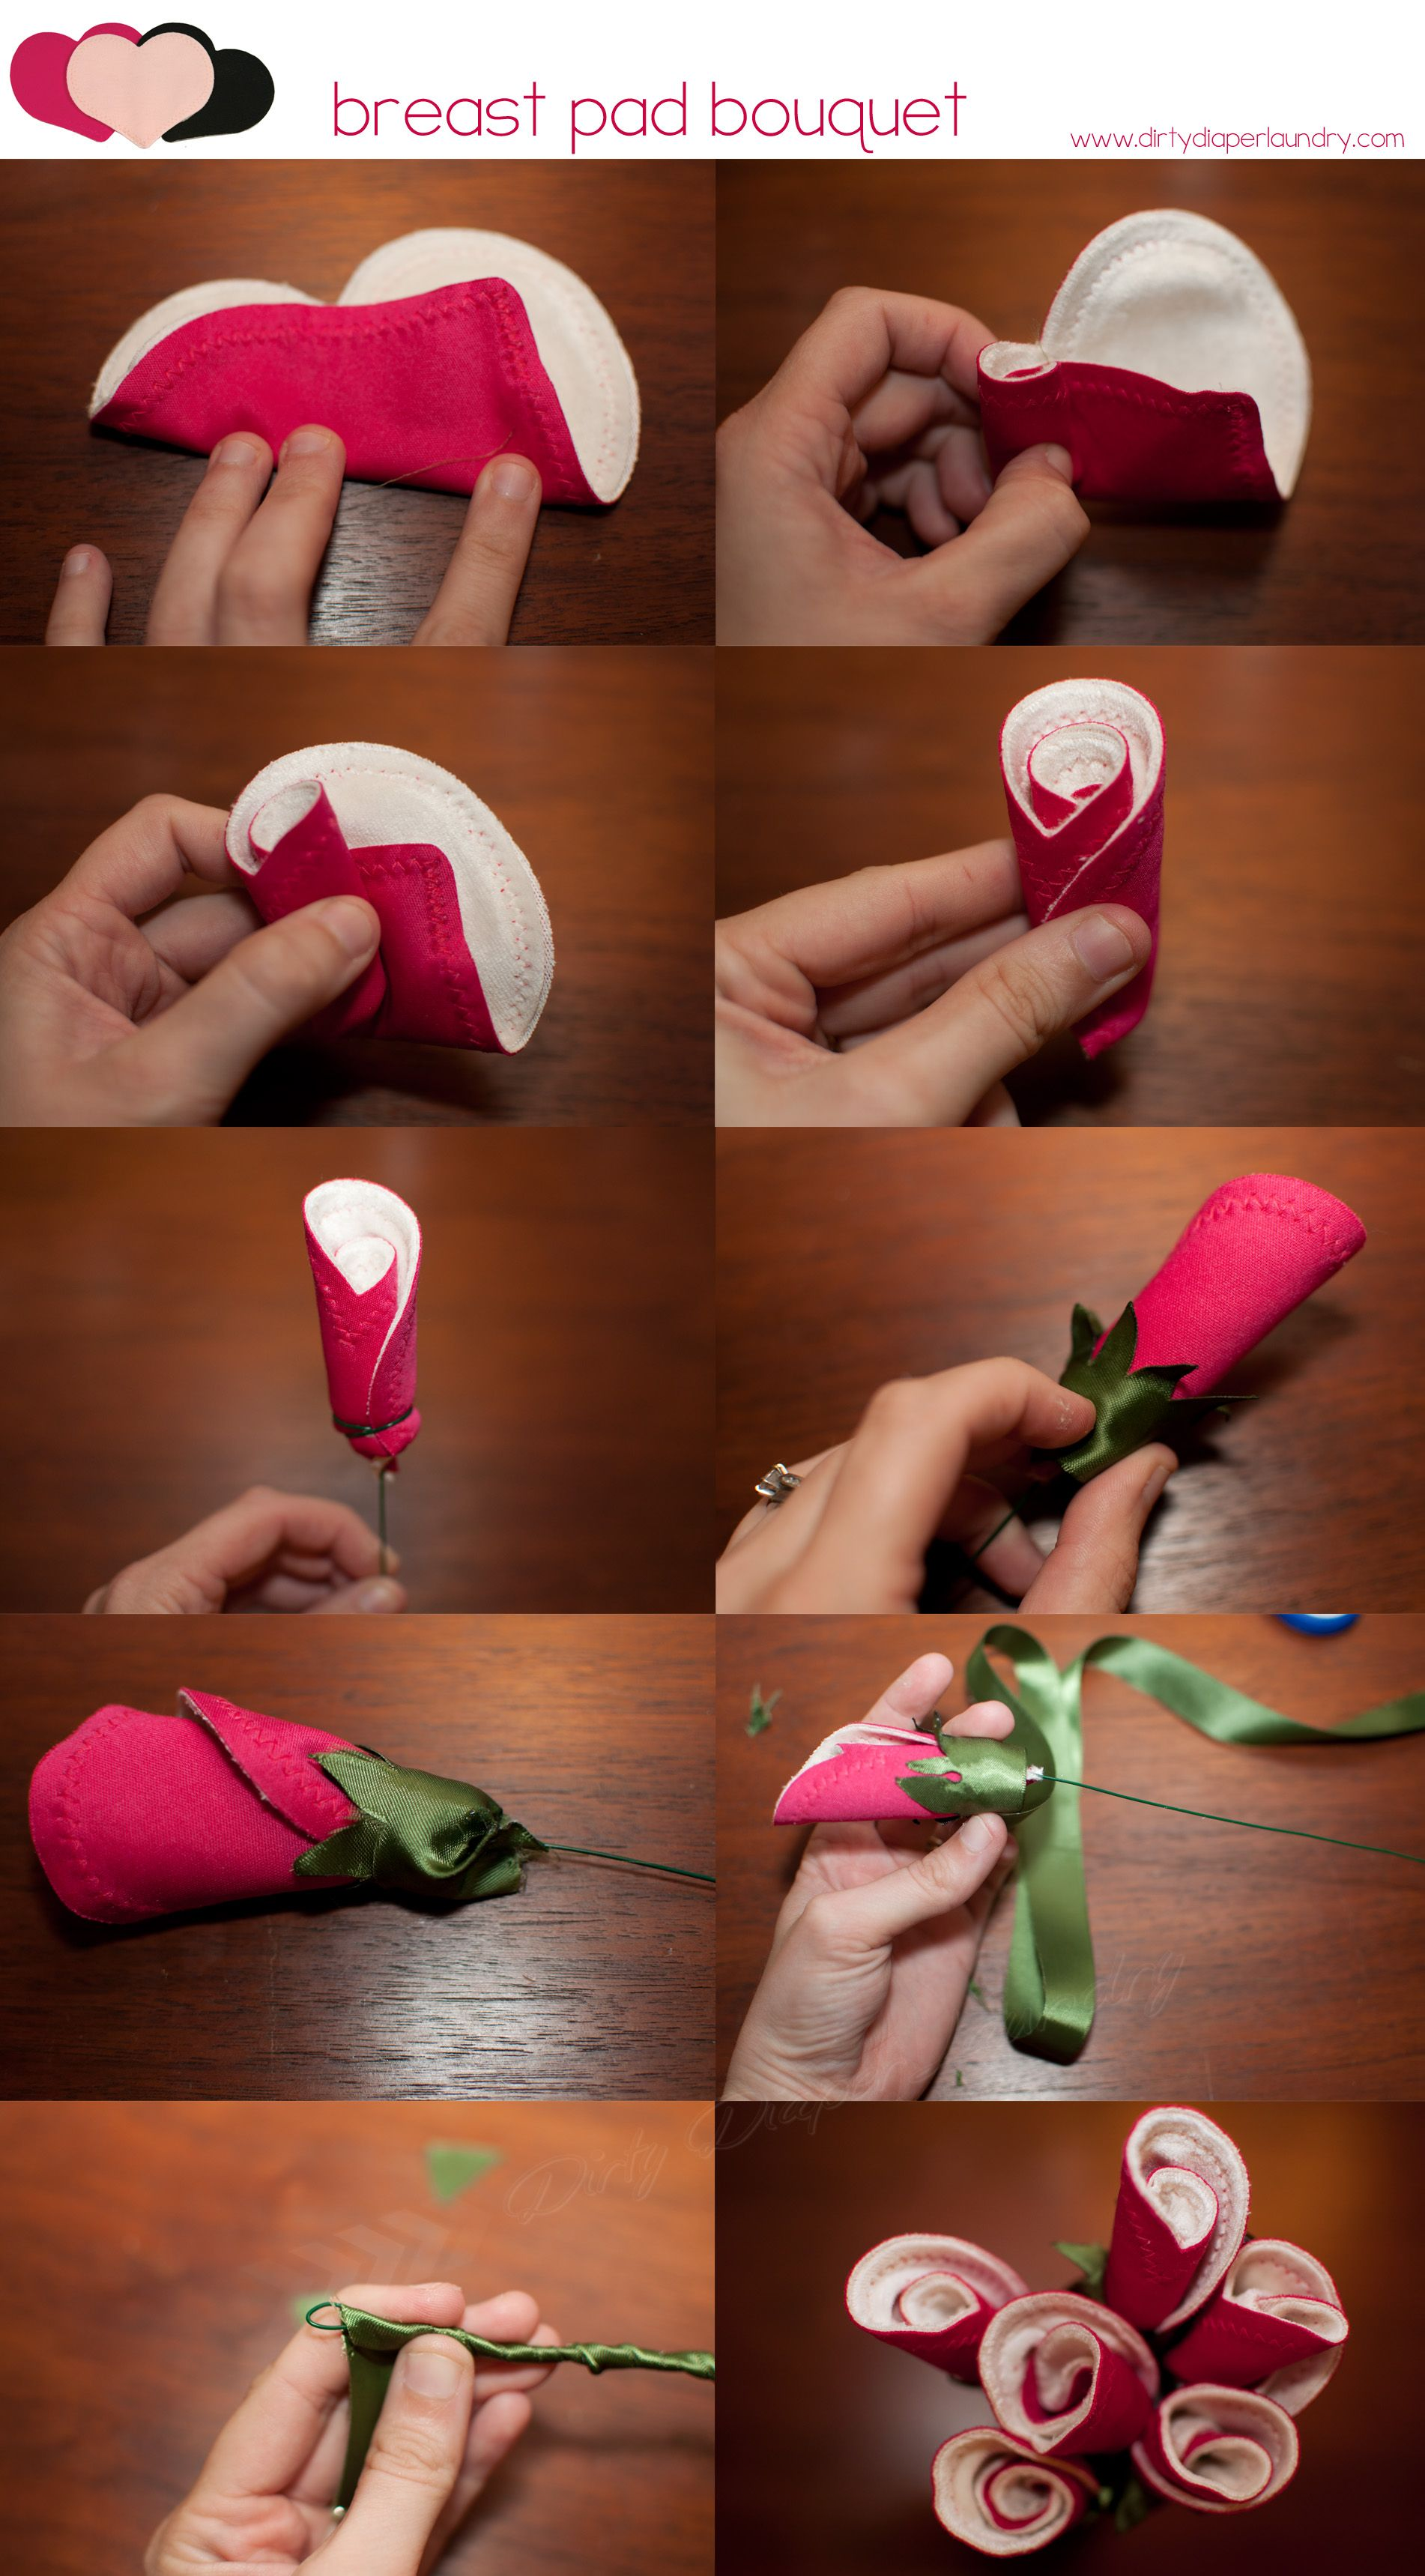 258431ef72 Create a one of a kind baby shower gift using breast pads! Tutorial for a  rose bud bouquet from Dirty Diaper Laundry.